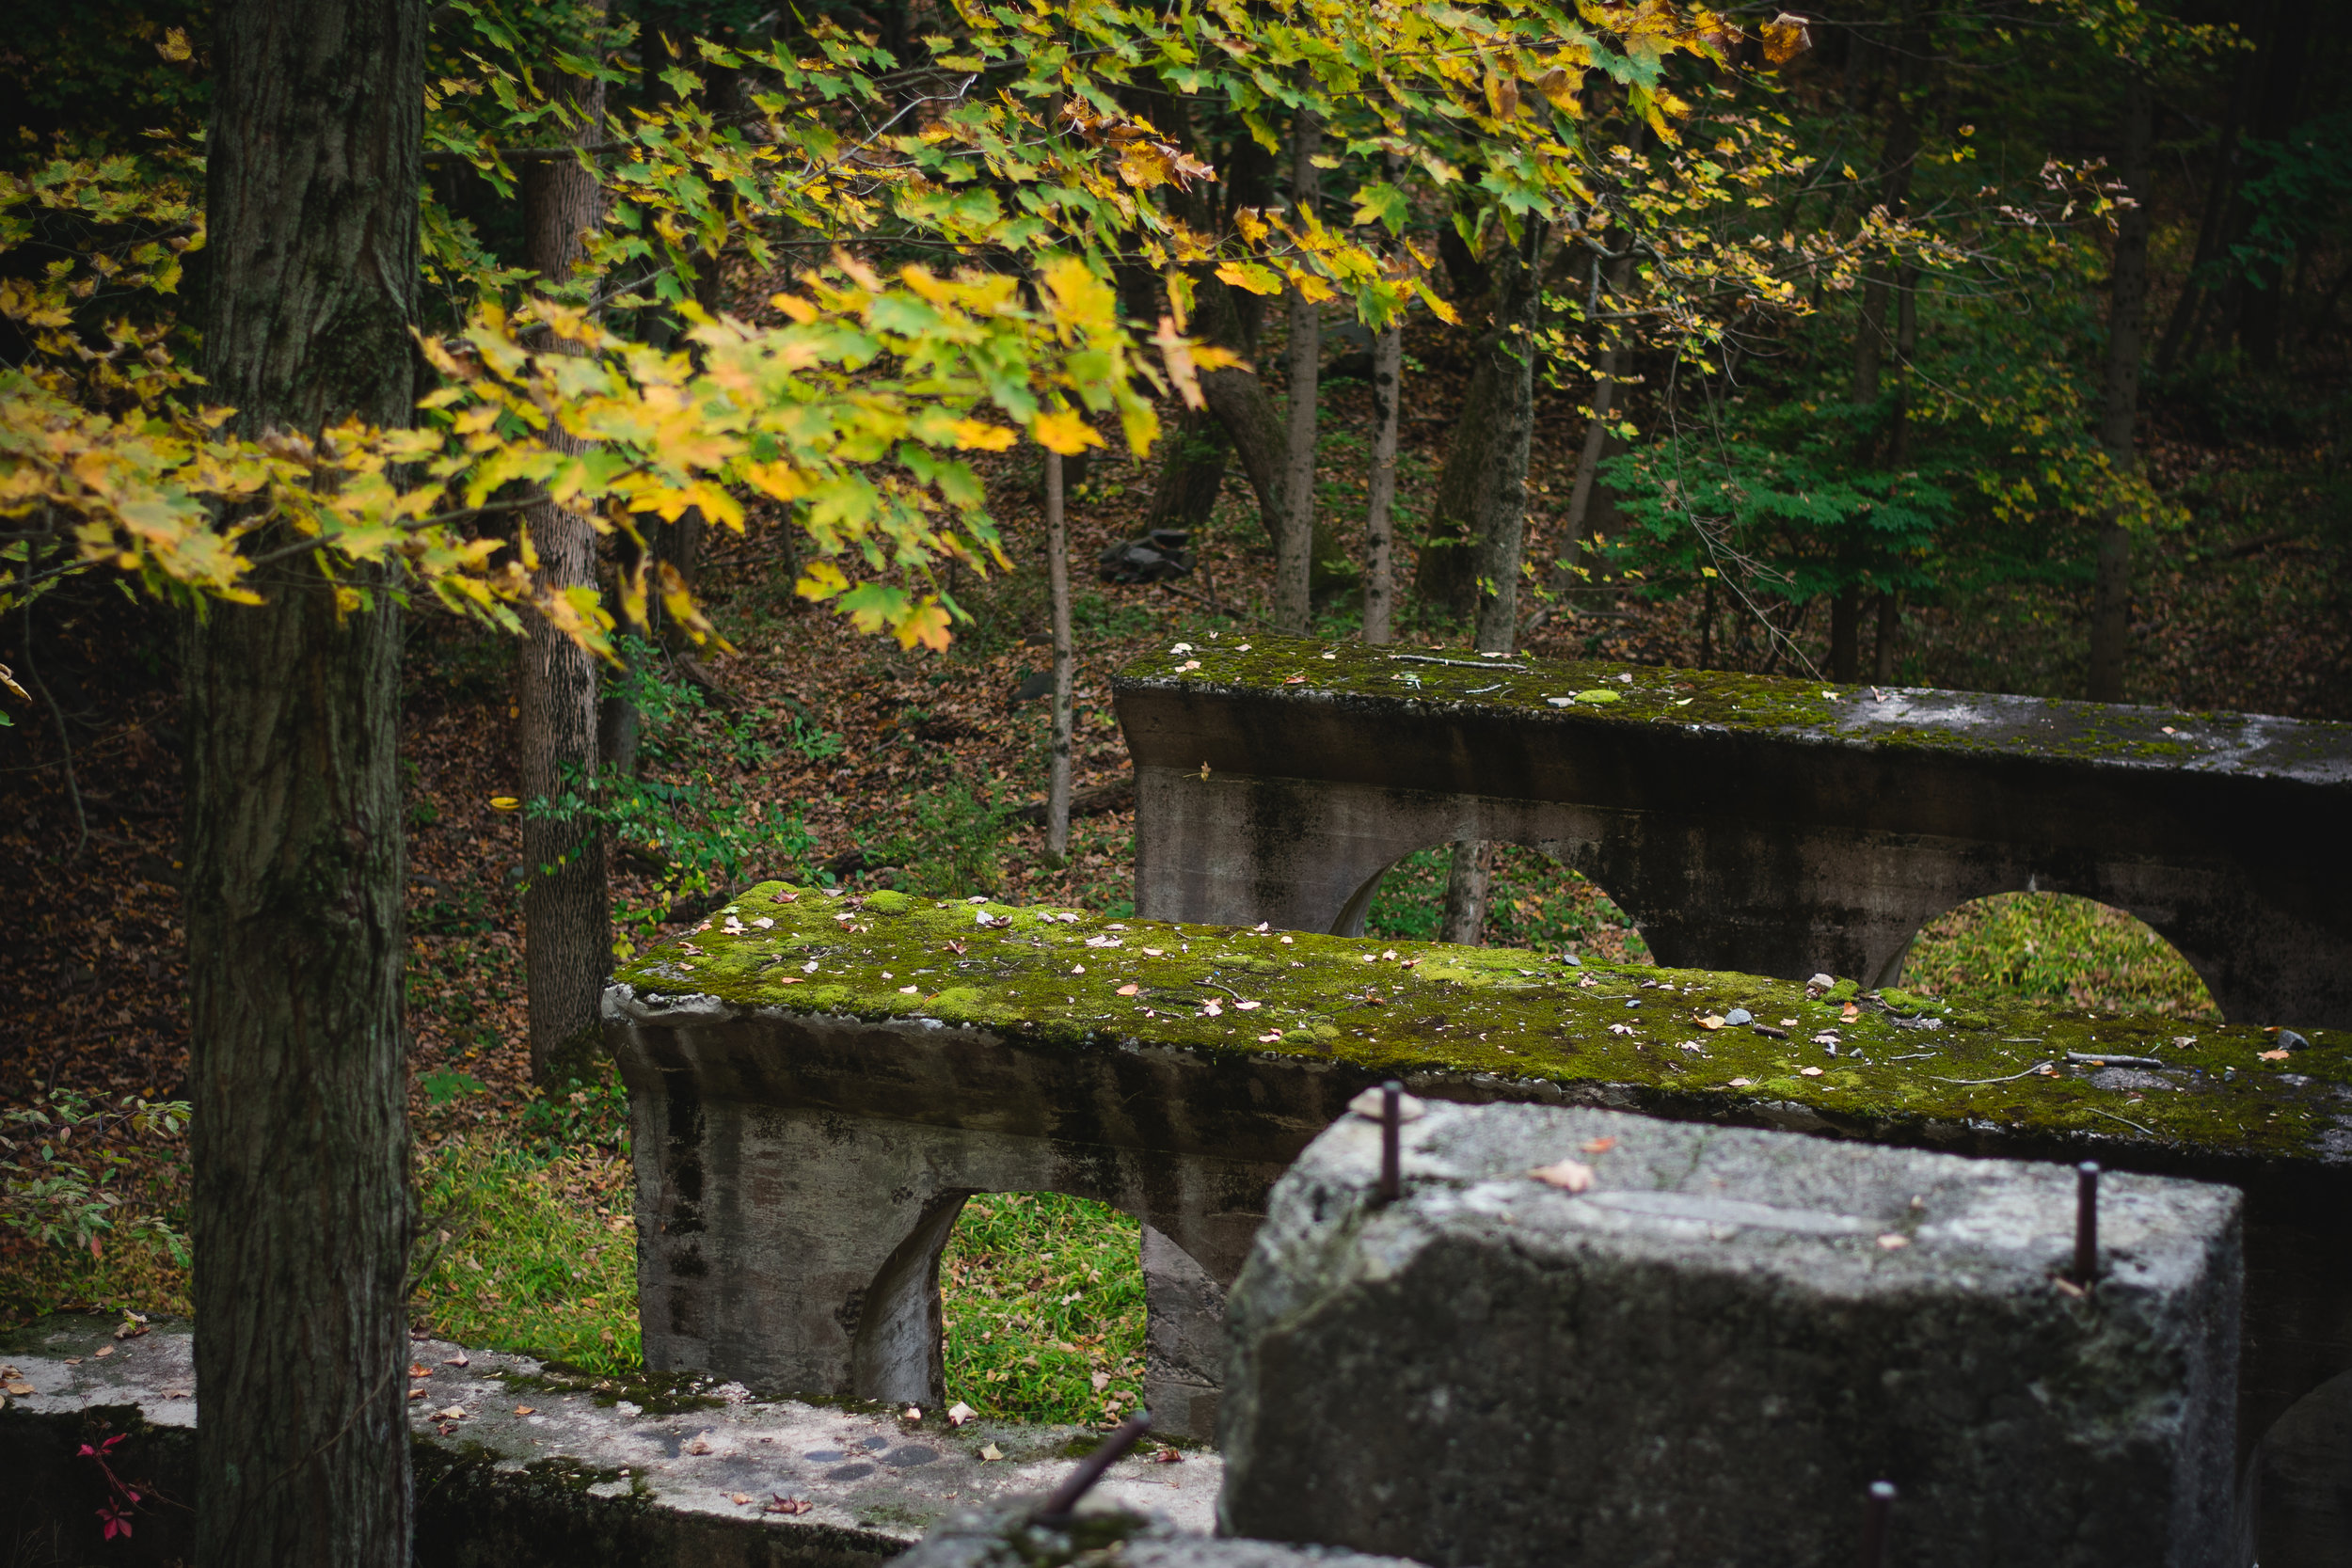 sleeping giant arches from with moss2.jpg